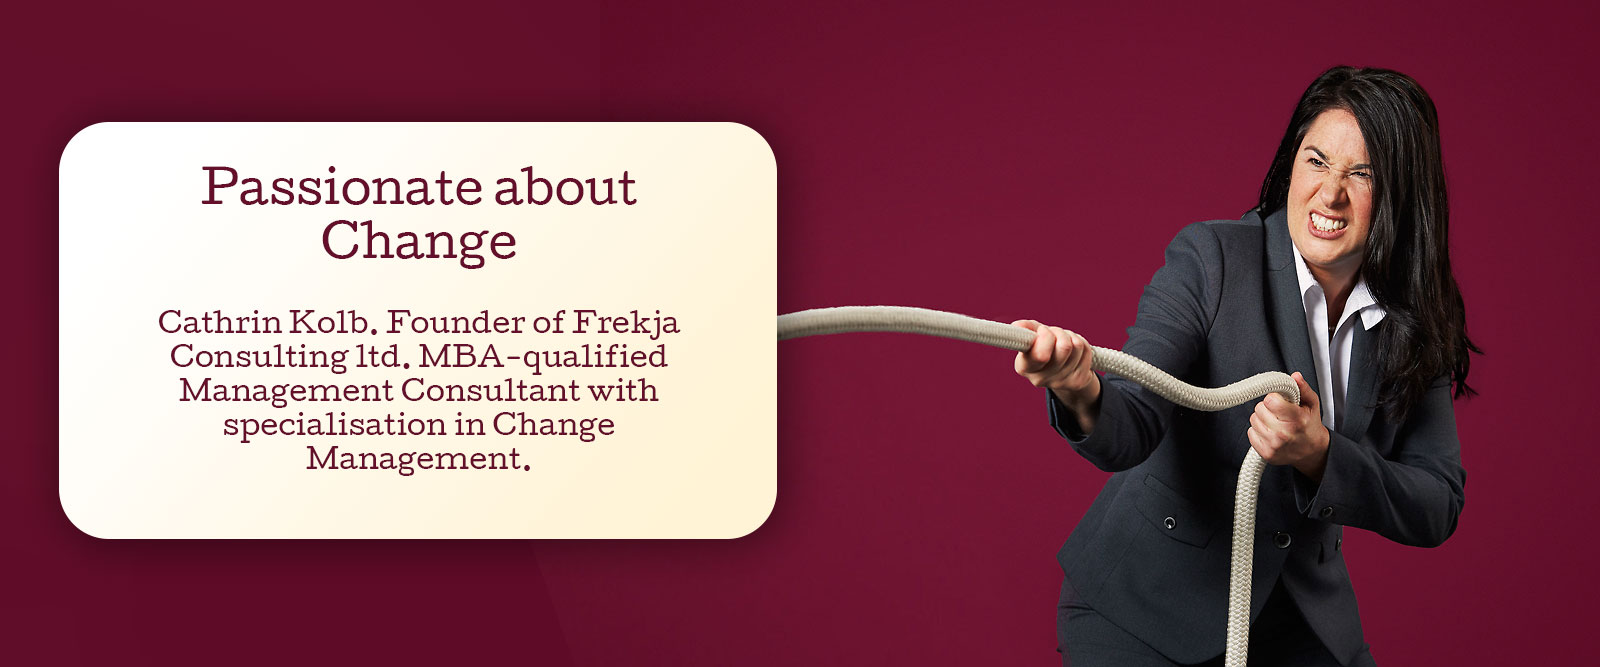 Passionate about Change. Cathrin Kolb. Founder of Frekja Consulting ltd. MBA-qualified Management Consultant with specialisation in Change Management.